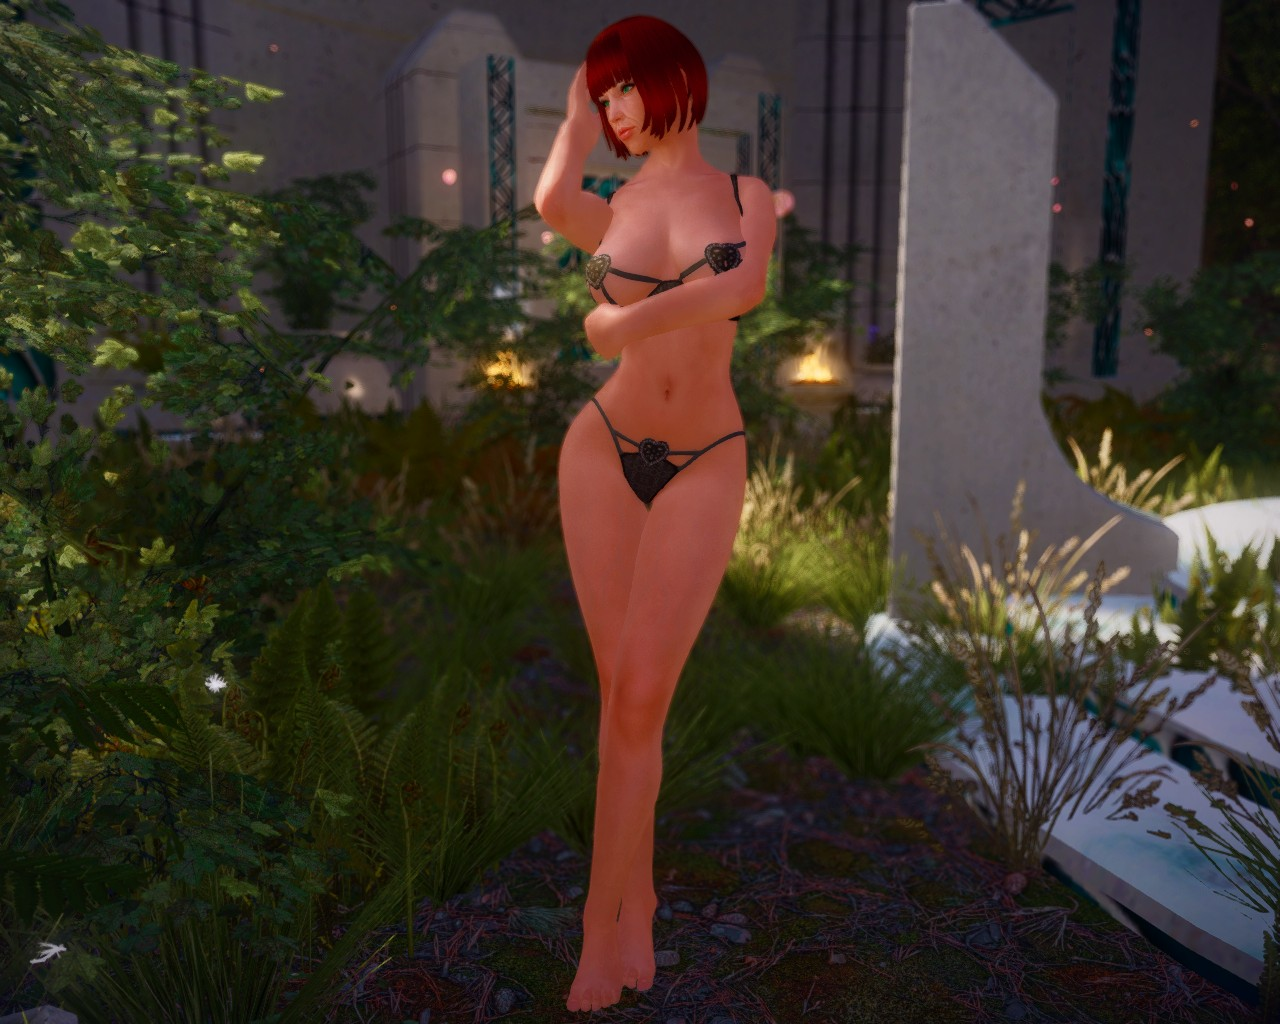 [Melodic] Risque Lingerie Xtra 00.jpg